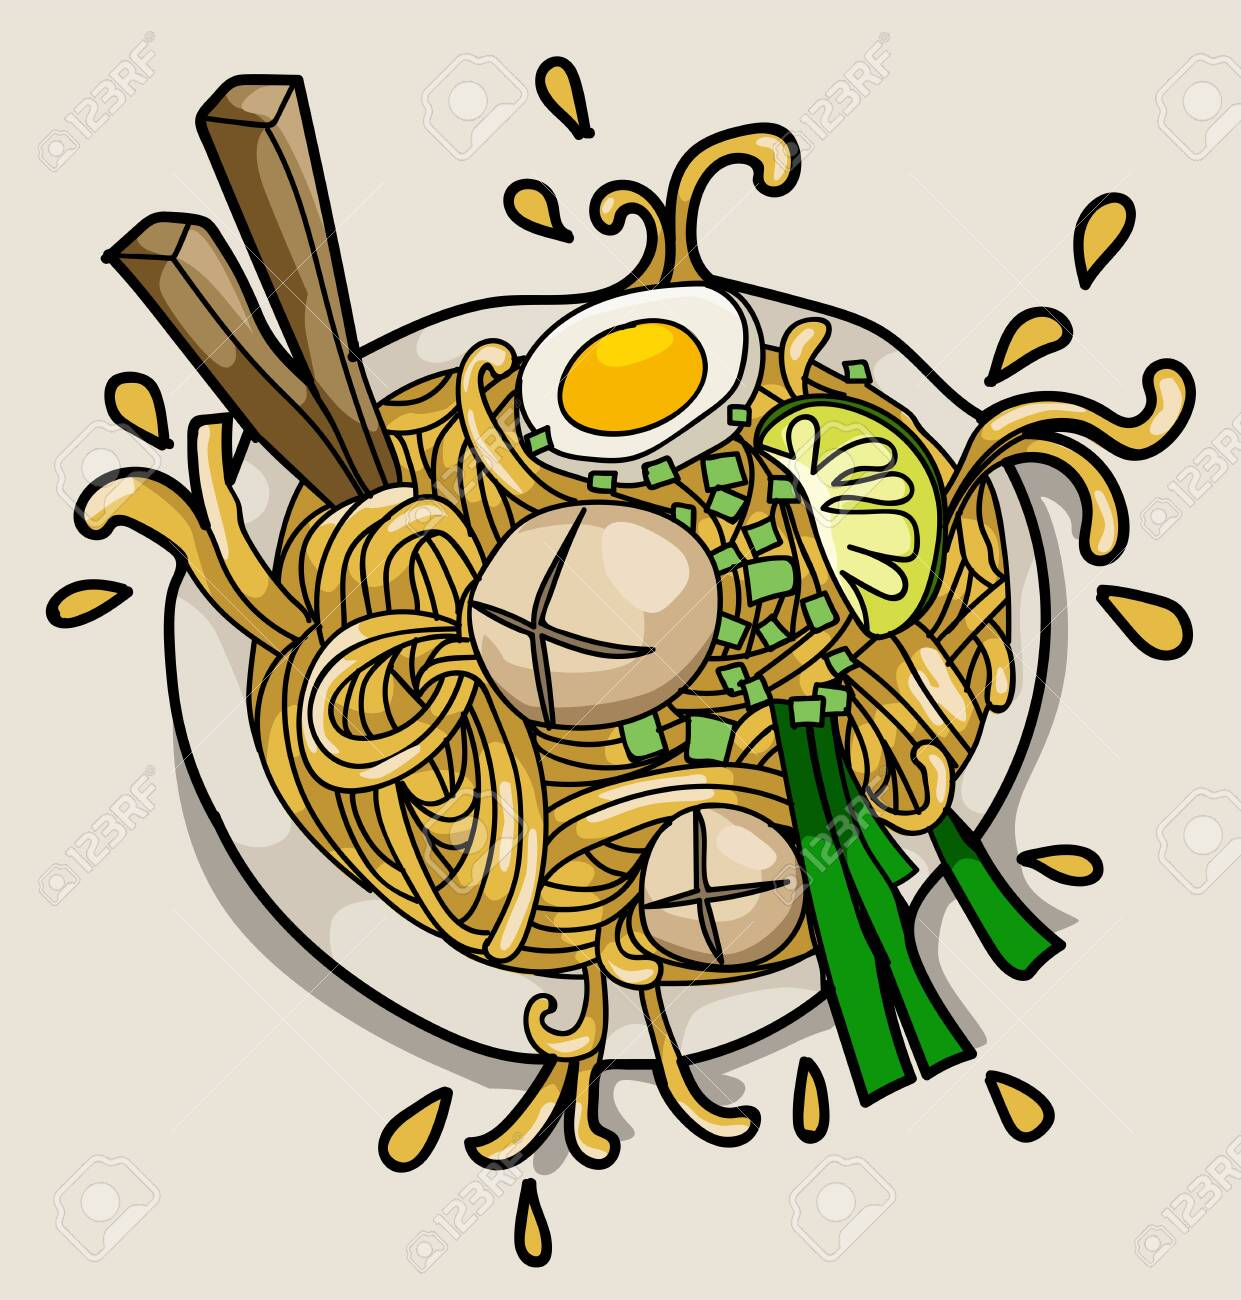 Asian Noodle Ramen Restaurant Poster Concept Vector Illustration Royalty Free Cliparts Vectors And Stock Illustration Image 124044682